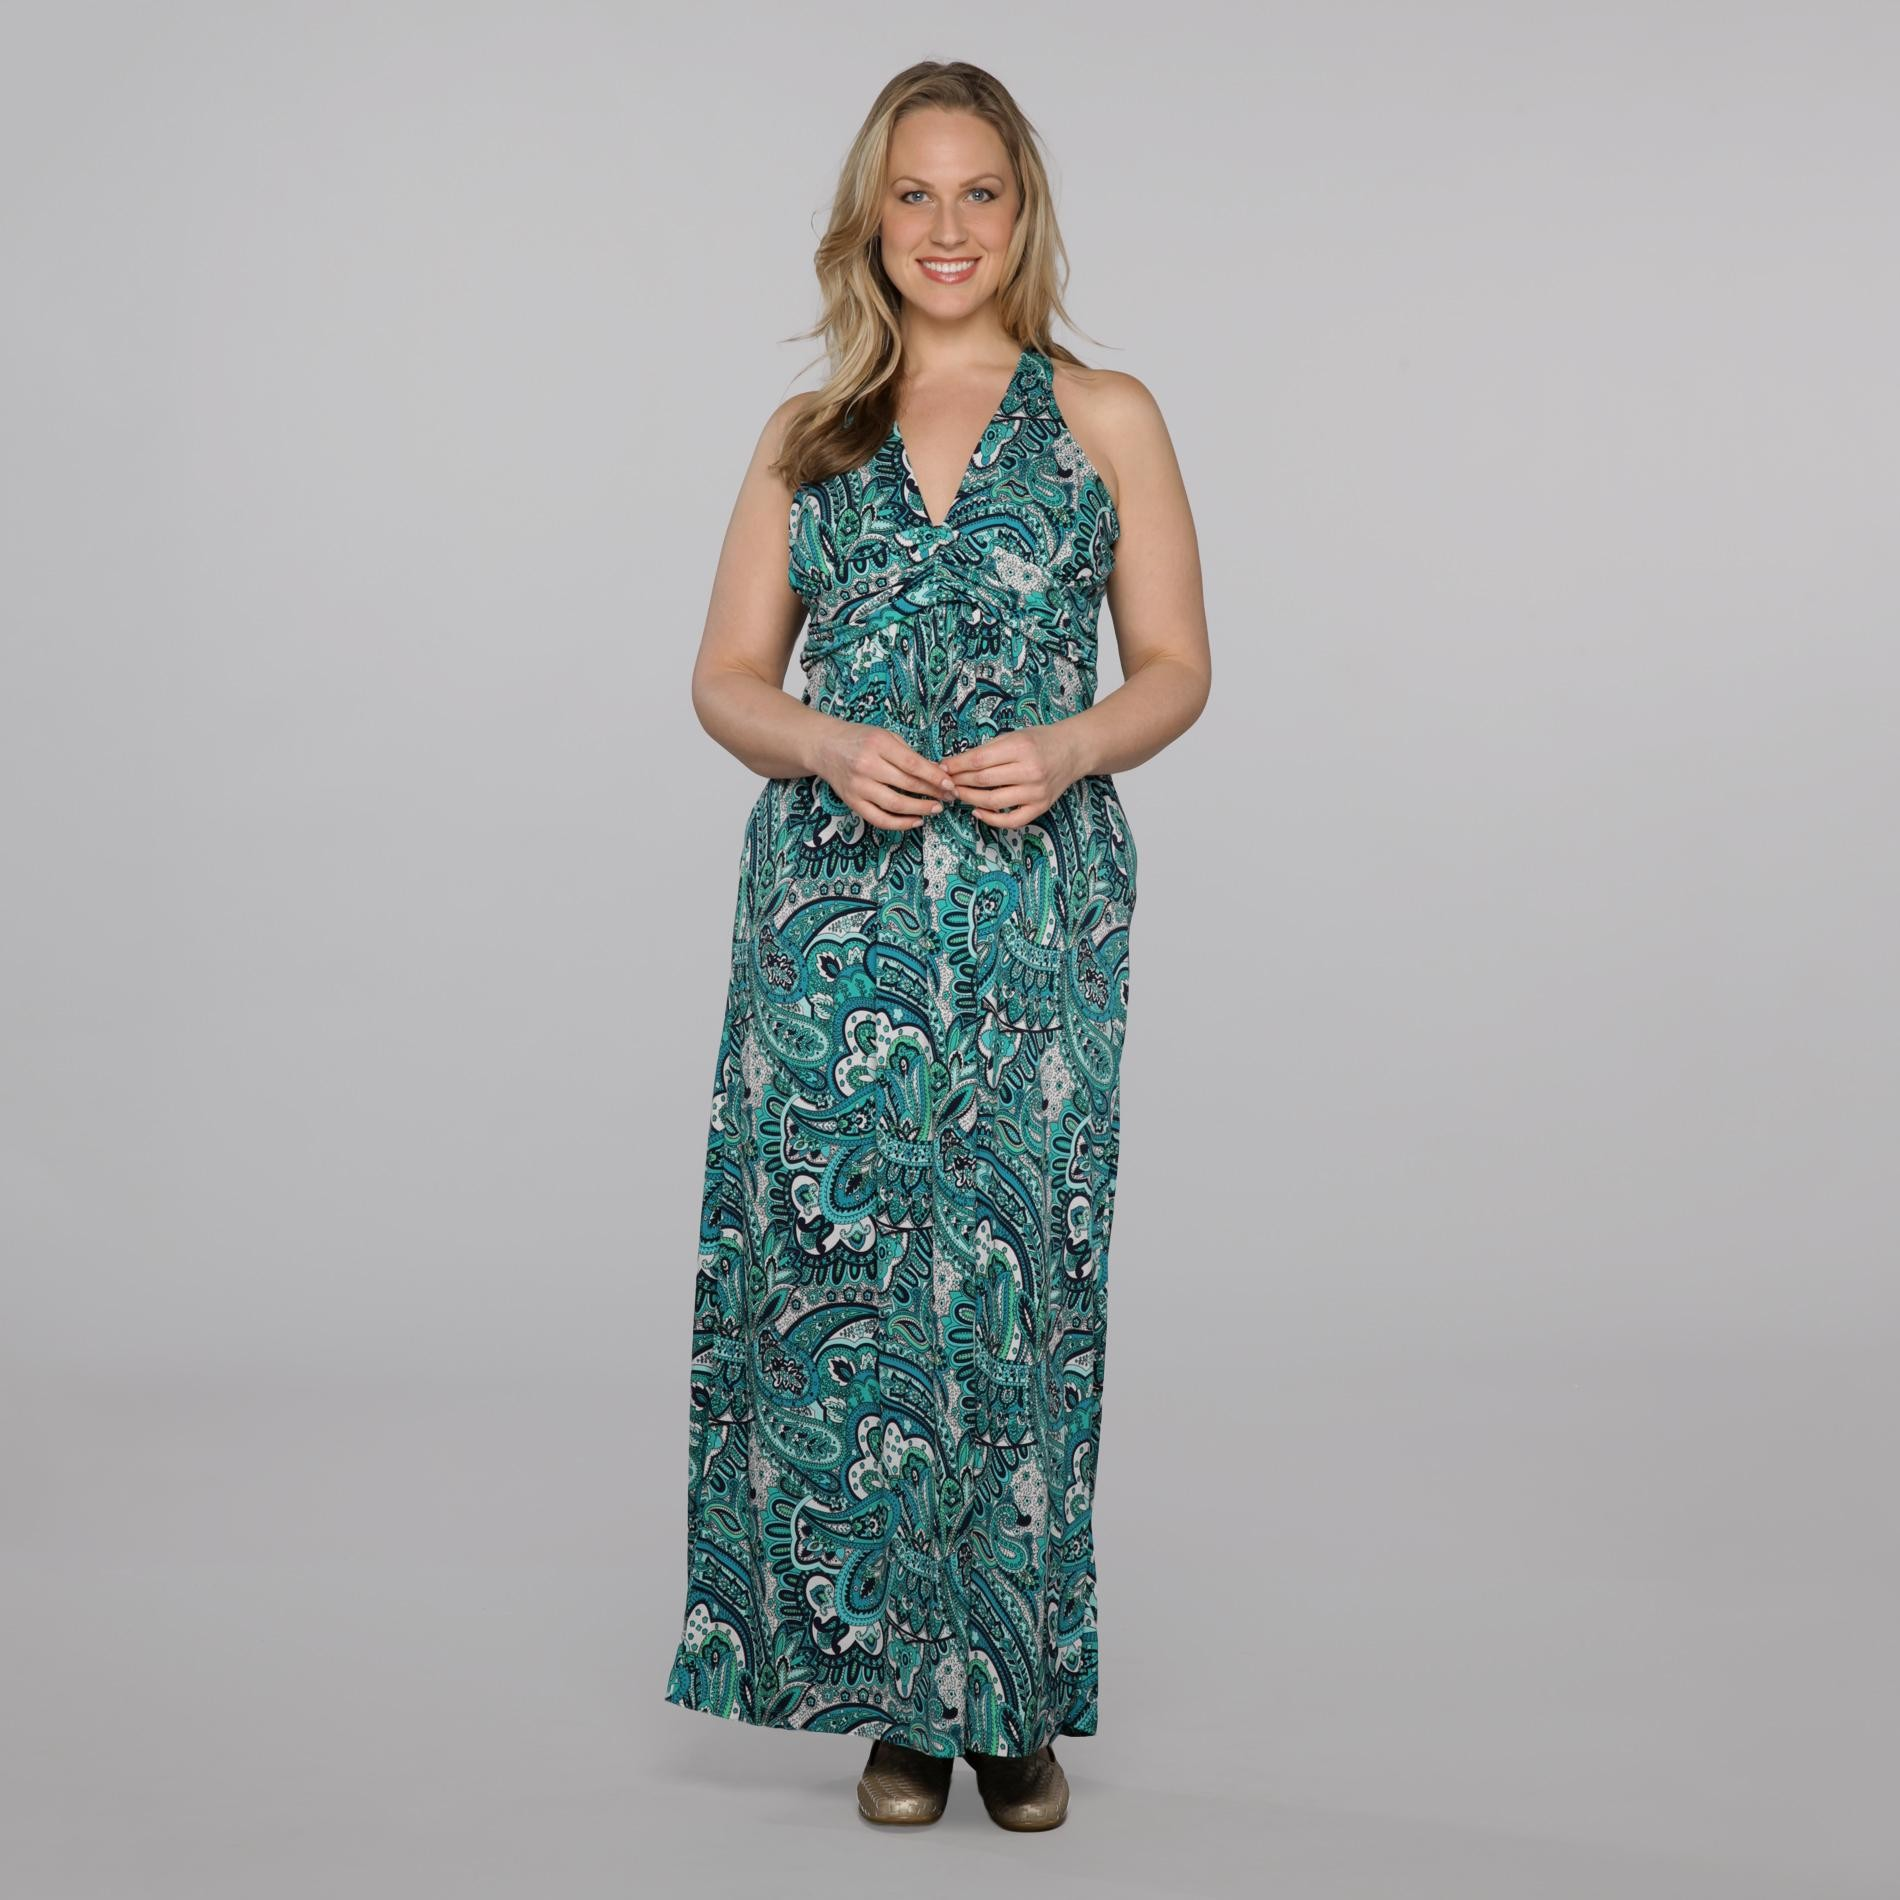 Rhapsody Women's Plus Maxi Dress - Paisley at Sears.com